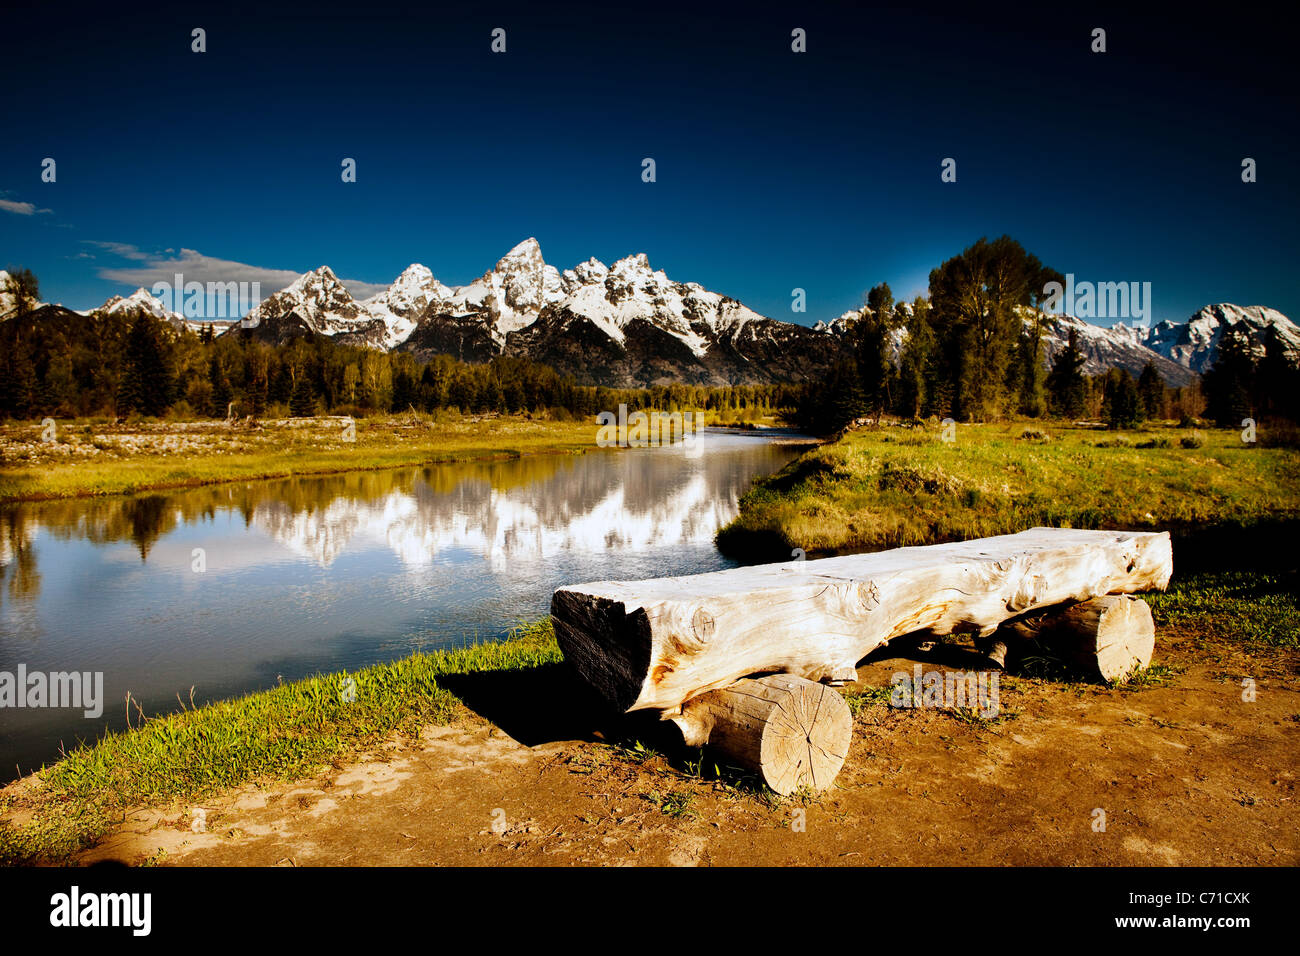 Grand Tetons in Jackson Hole Wyoming at sunrise. - Stock Image